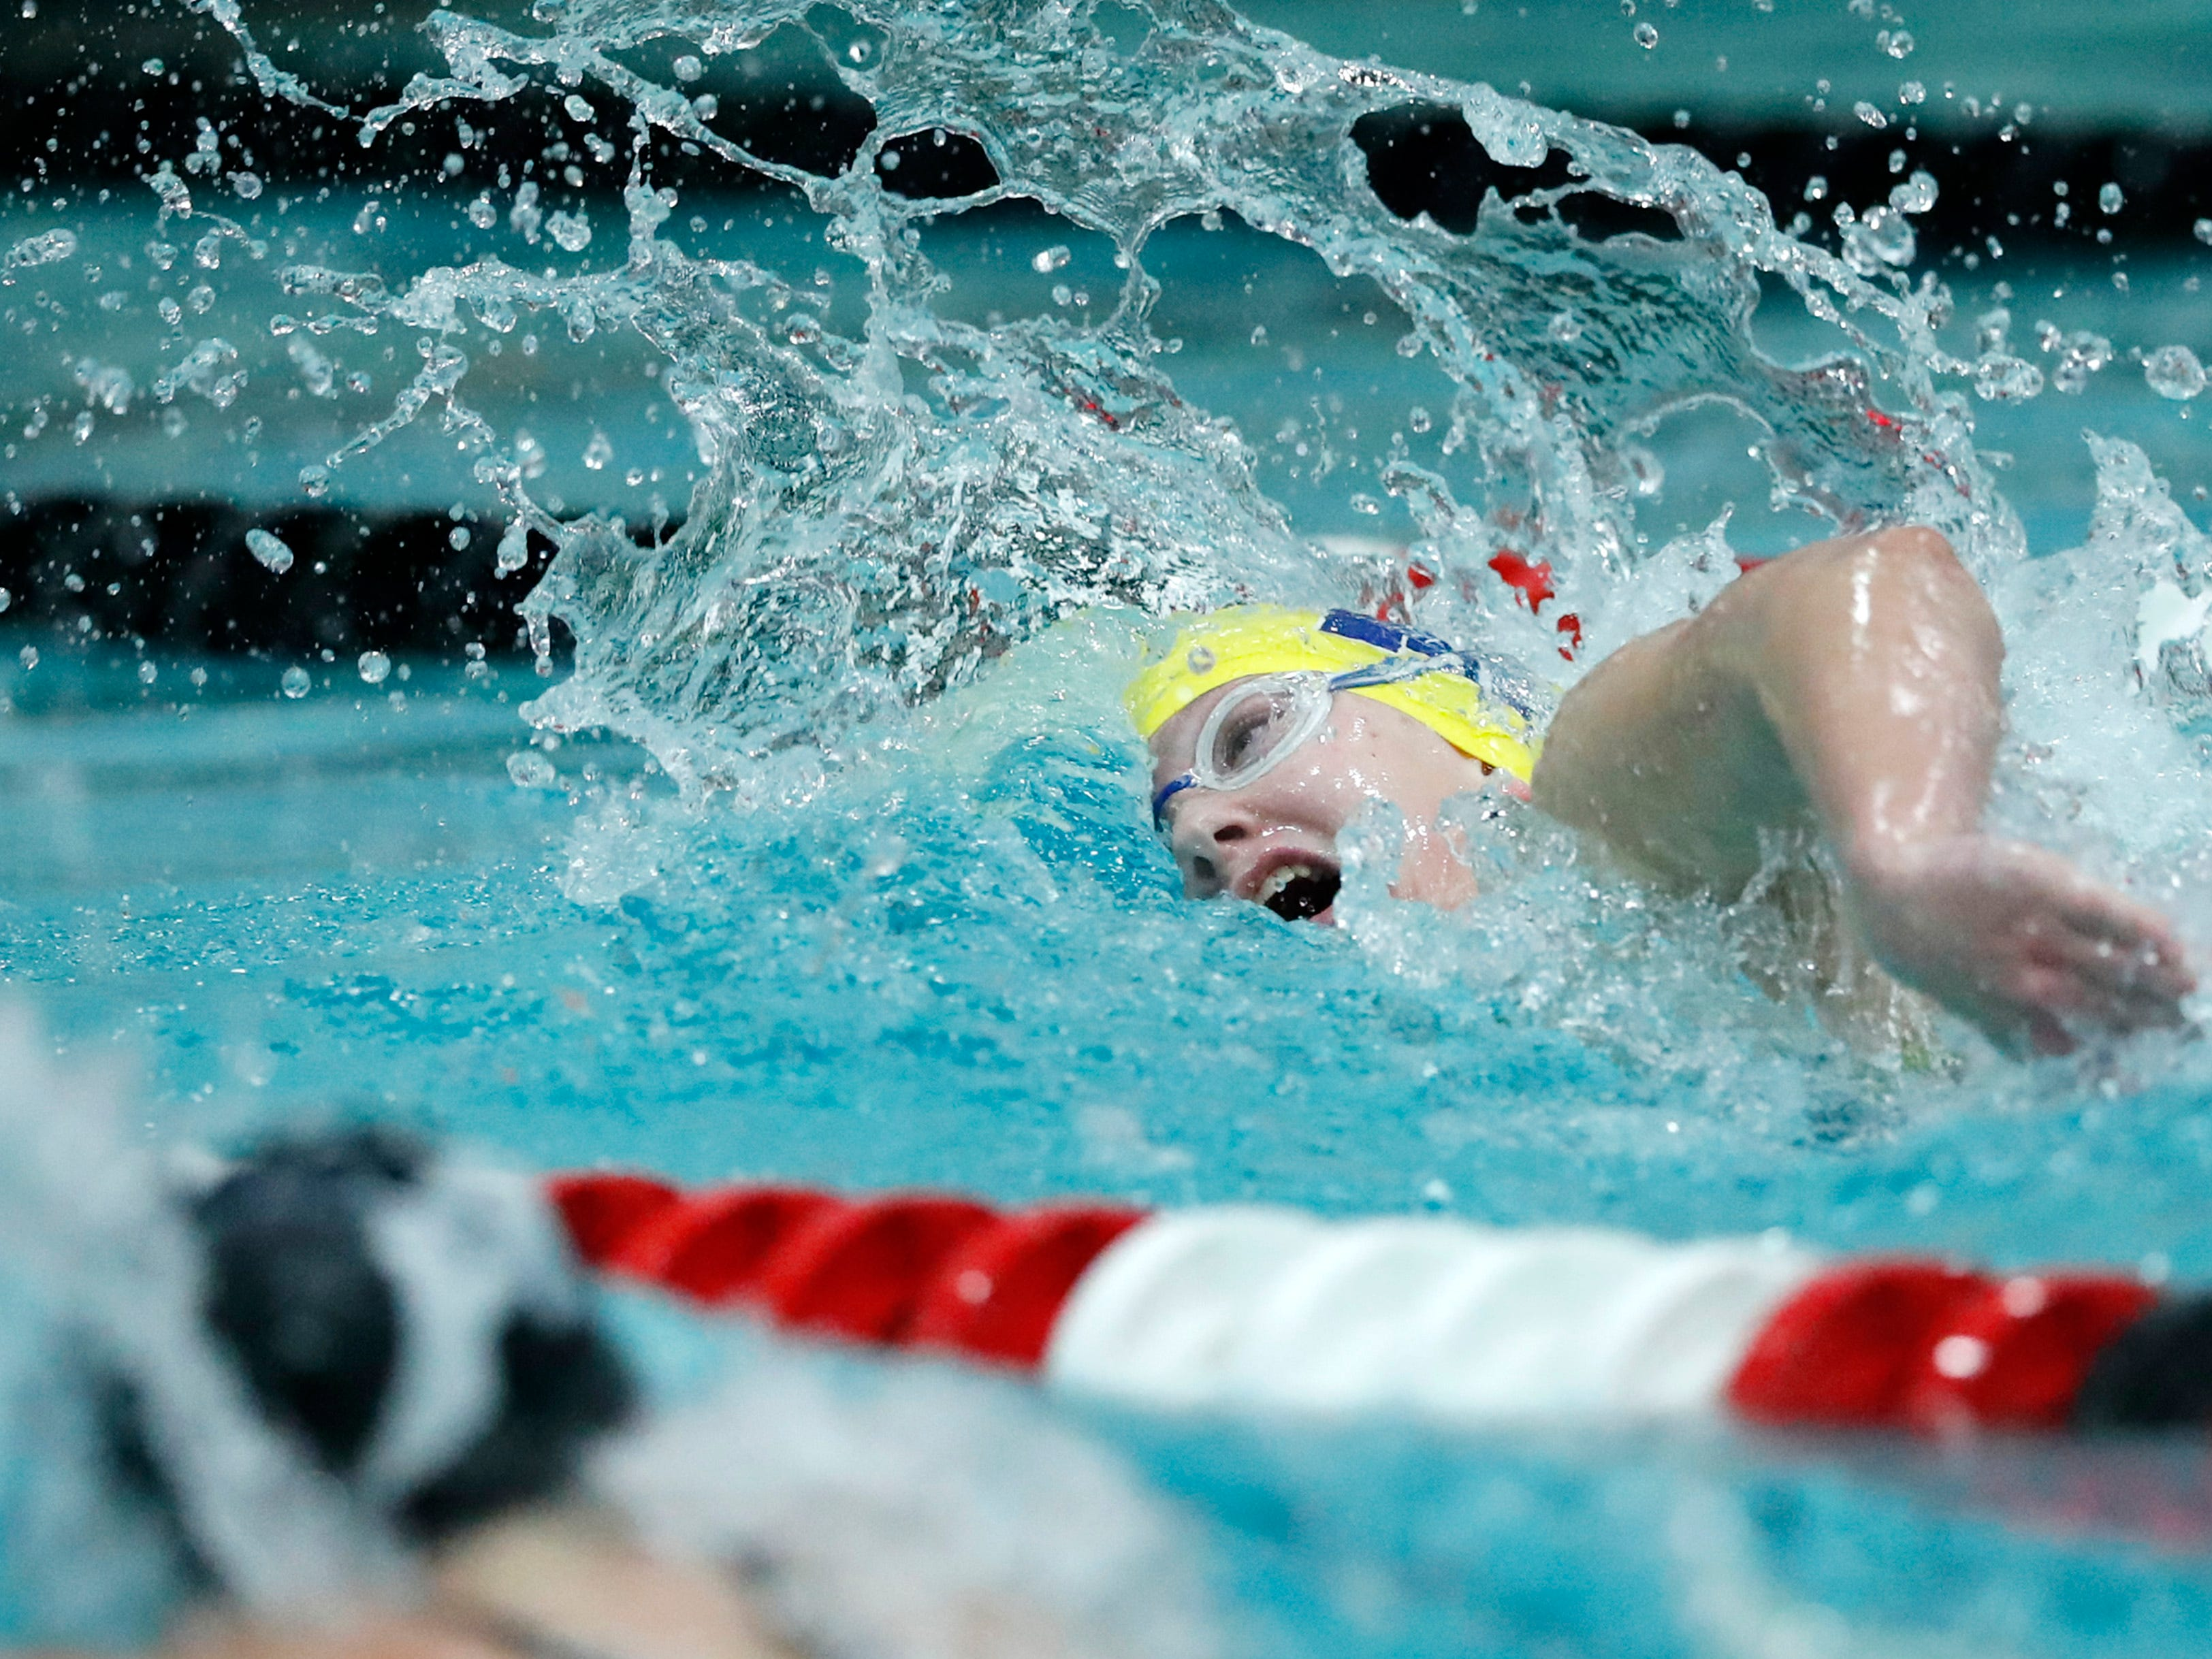 Tomahawk's Kylee Theiler races in the 200 yard freestyle during the WIAA Division 2 State Swimming and Diving meet Friday, Nov. 9, 2018, at the UW Natatorium in Madison, Wis.